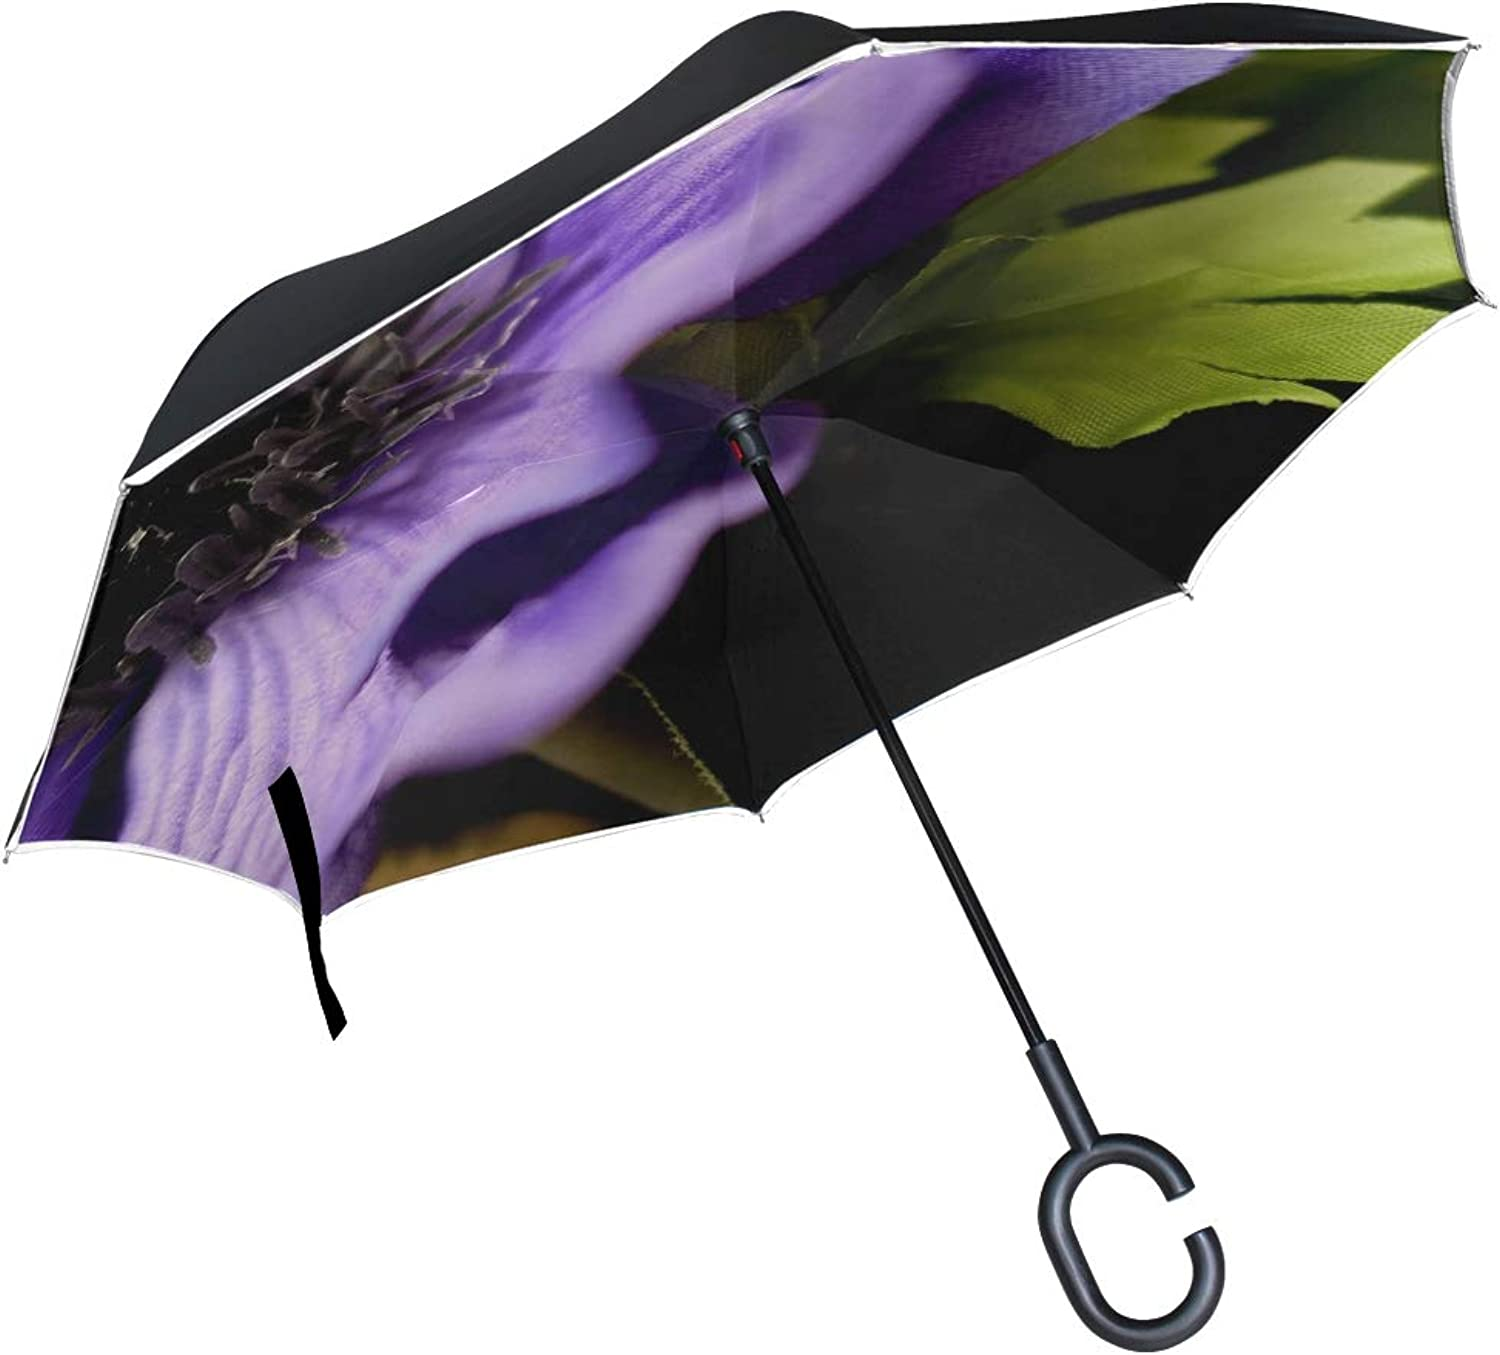 Double Layer Ingreened Art Flower Flower Nature Plant Garden Floral 3298513 Umbrellas Reverse Folding Umbrella Windproof Uv Predection Big Straight Umbrella for Car Rain Outdoor with CShaped Handle